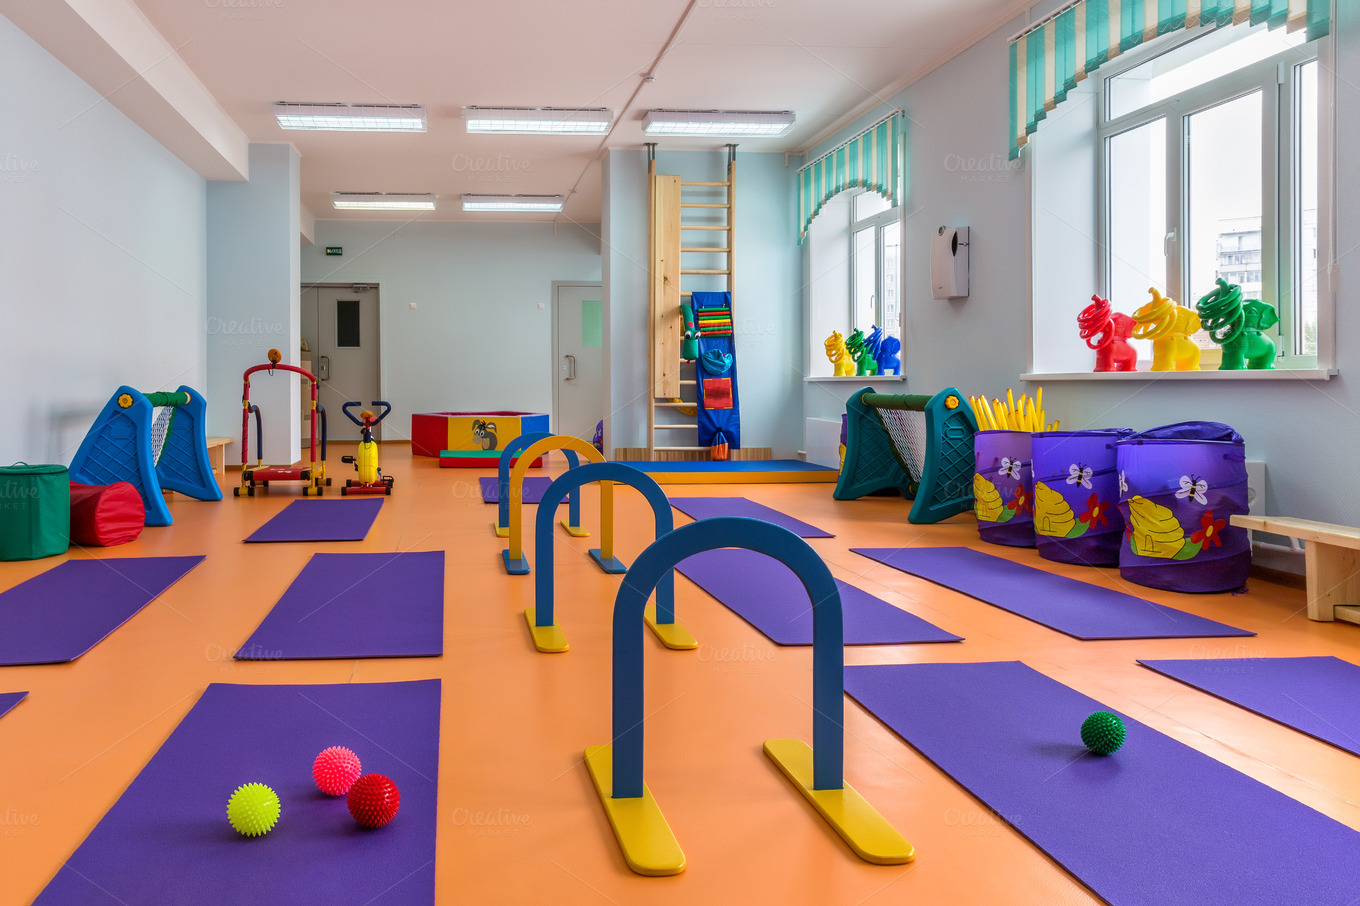 Children s room with gym equipment education photos on